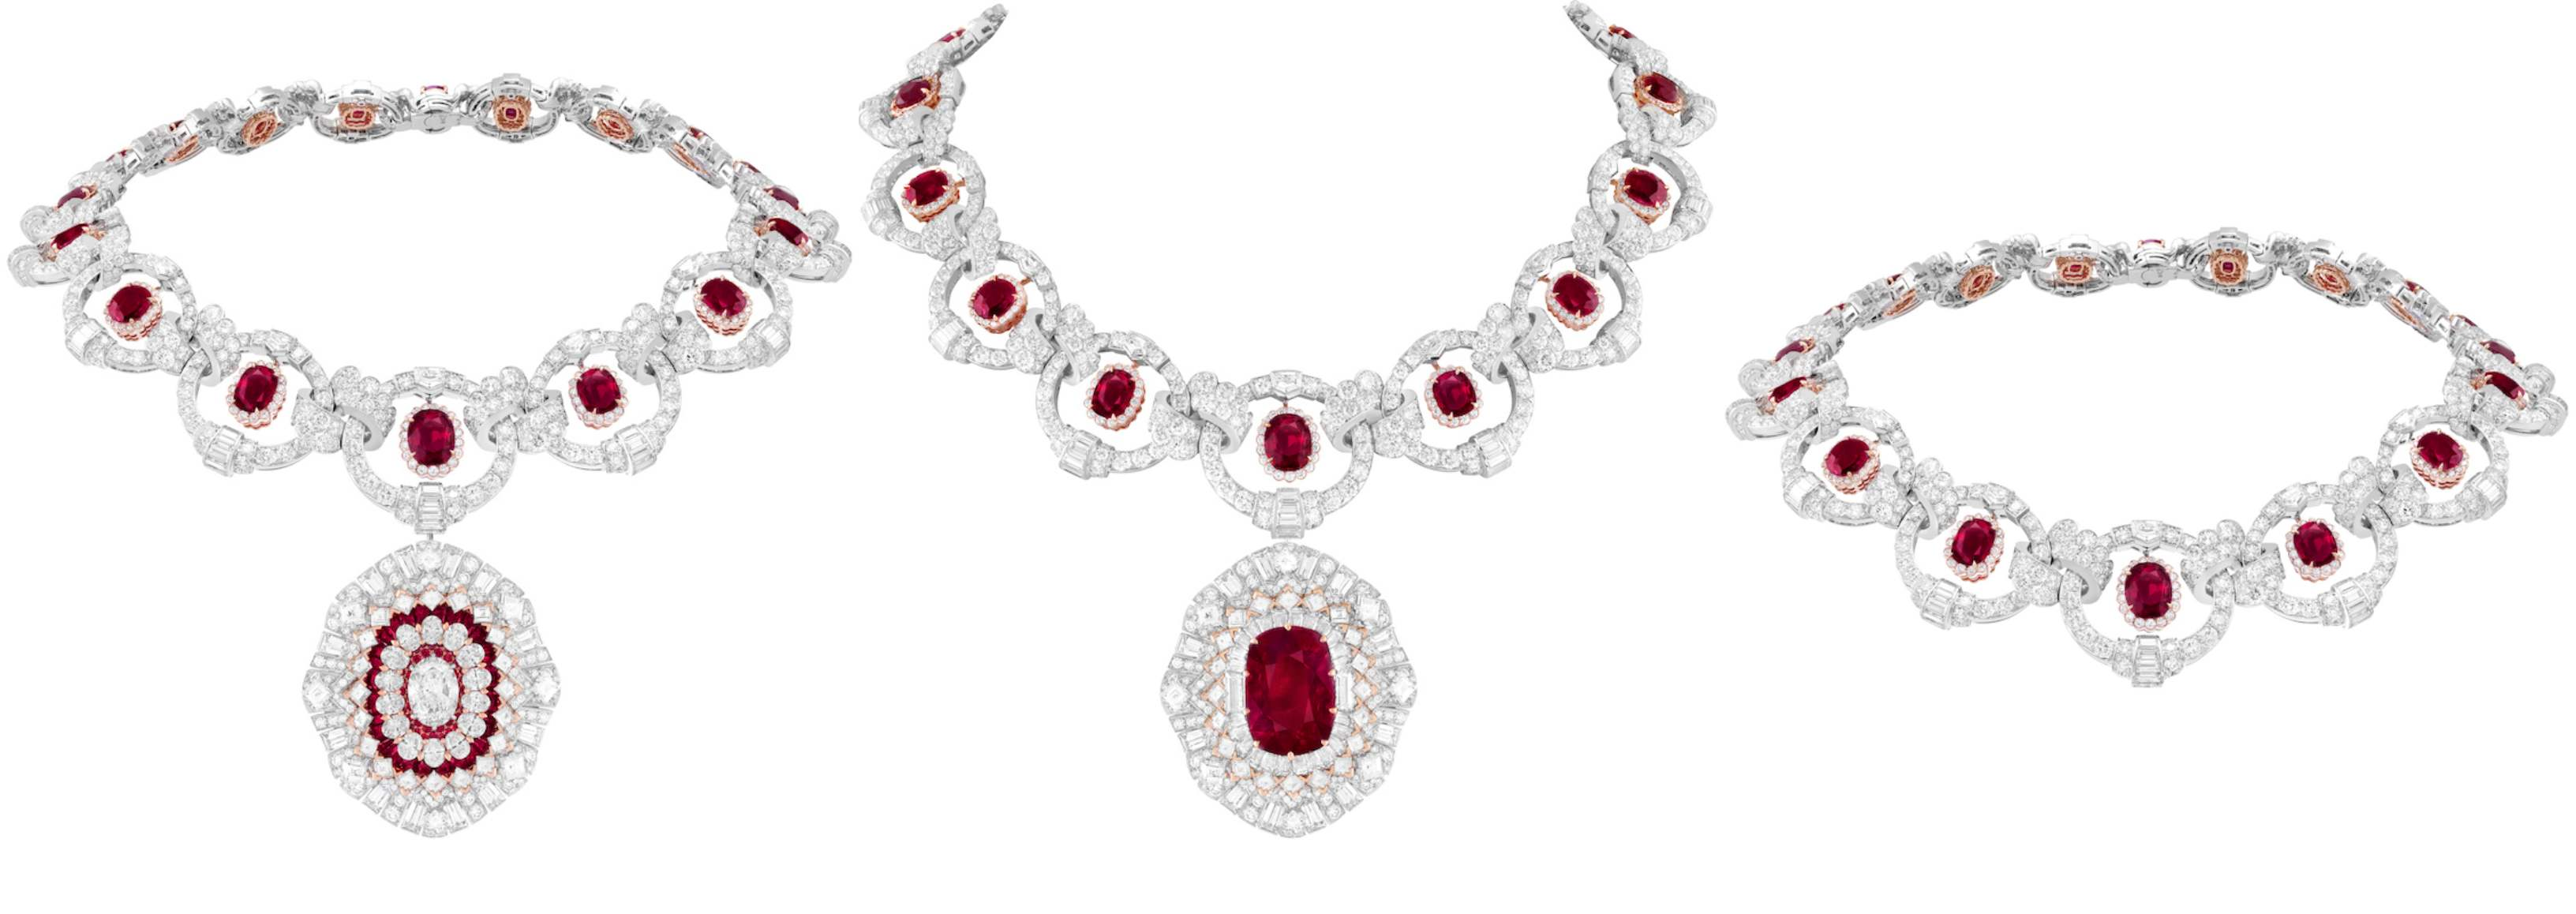 Rubis Flamboyant Transformable Necklace